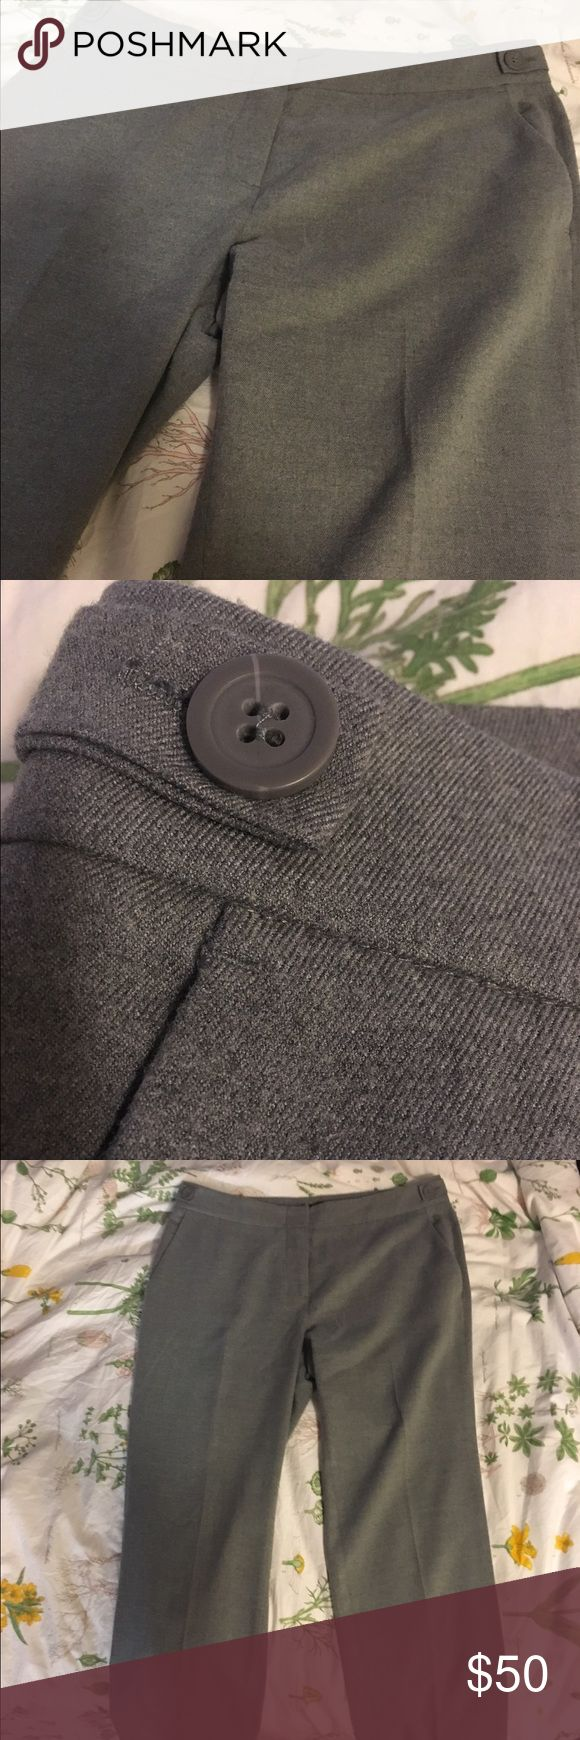 Couture Grey Slacks Work Pants Gorgeous and buttery soft couture Paris BCBG grey slacks, perfect for work. Worn once. In pristine condition. BCBG Pants Straight Leg